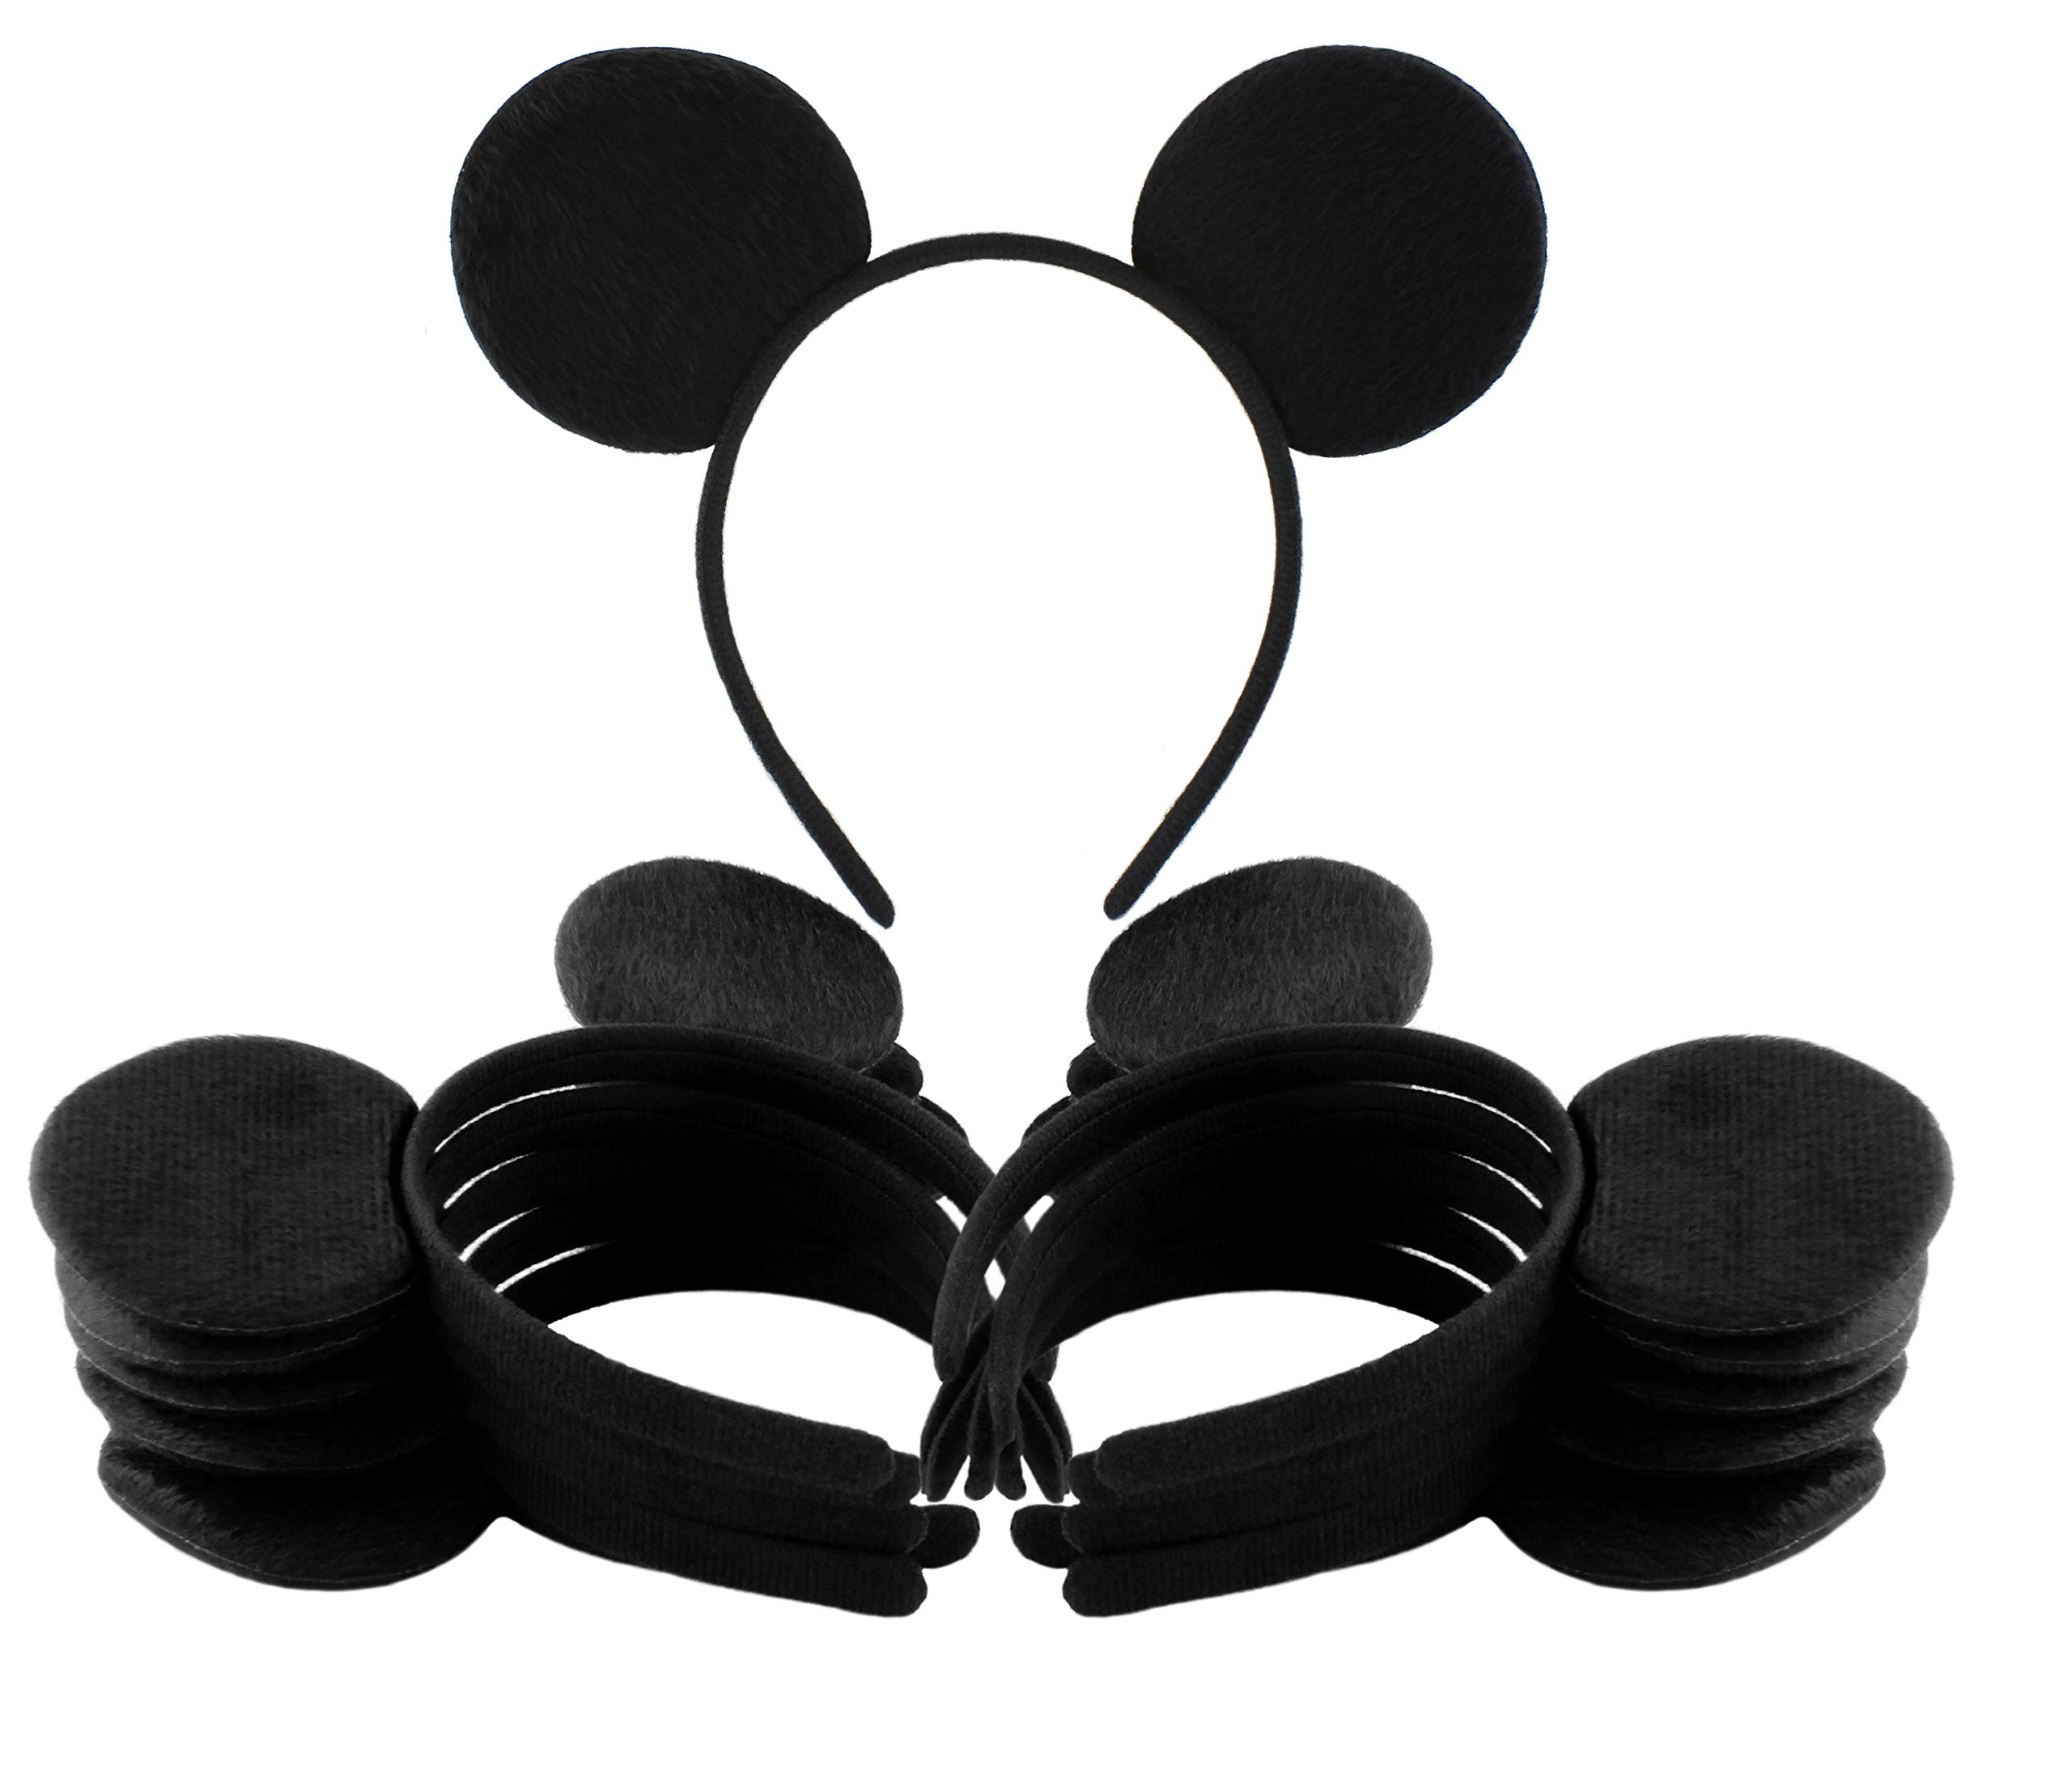 Black Mouse Ear Headbands (12-Pack); Mickey Style Headgear for Costume/Party Favors by Cornucopia Brands